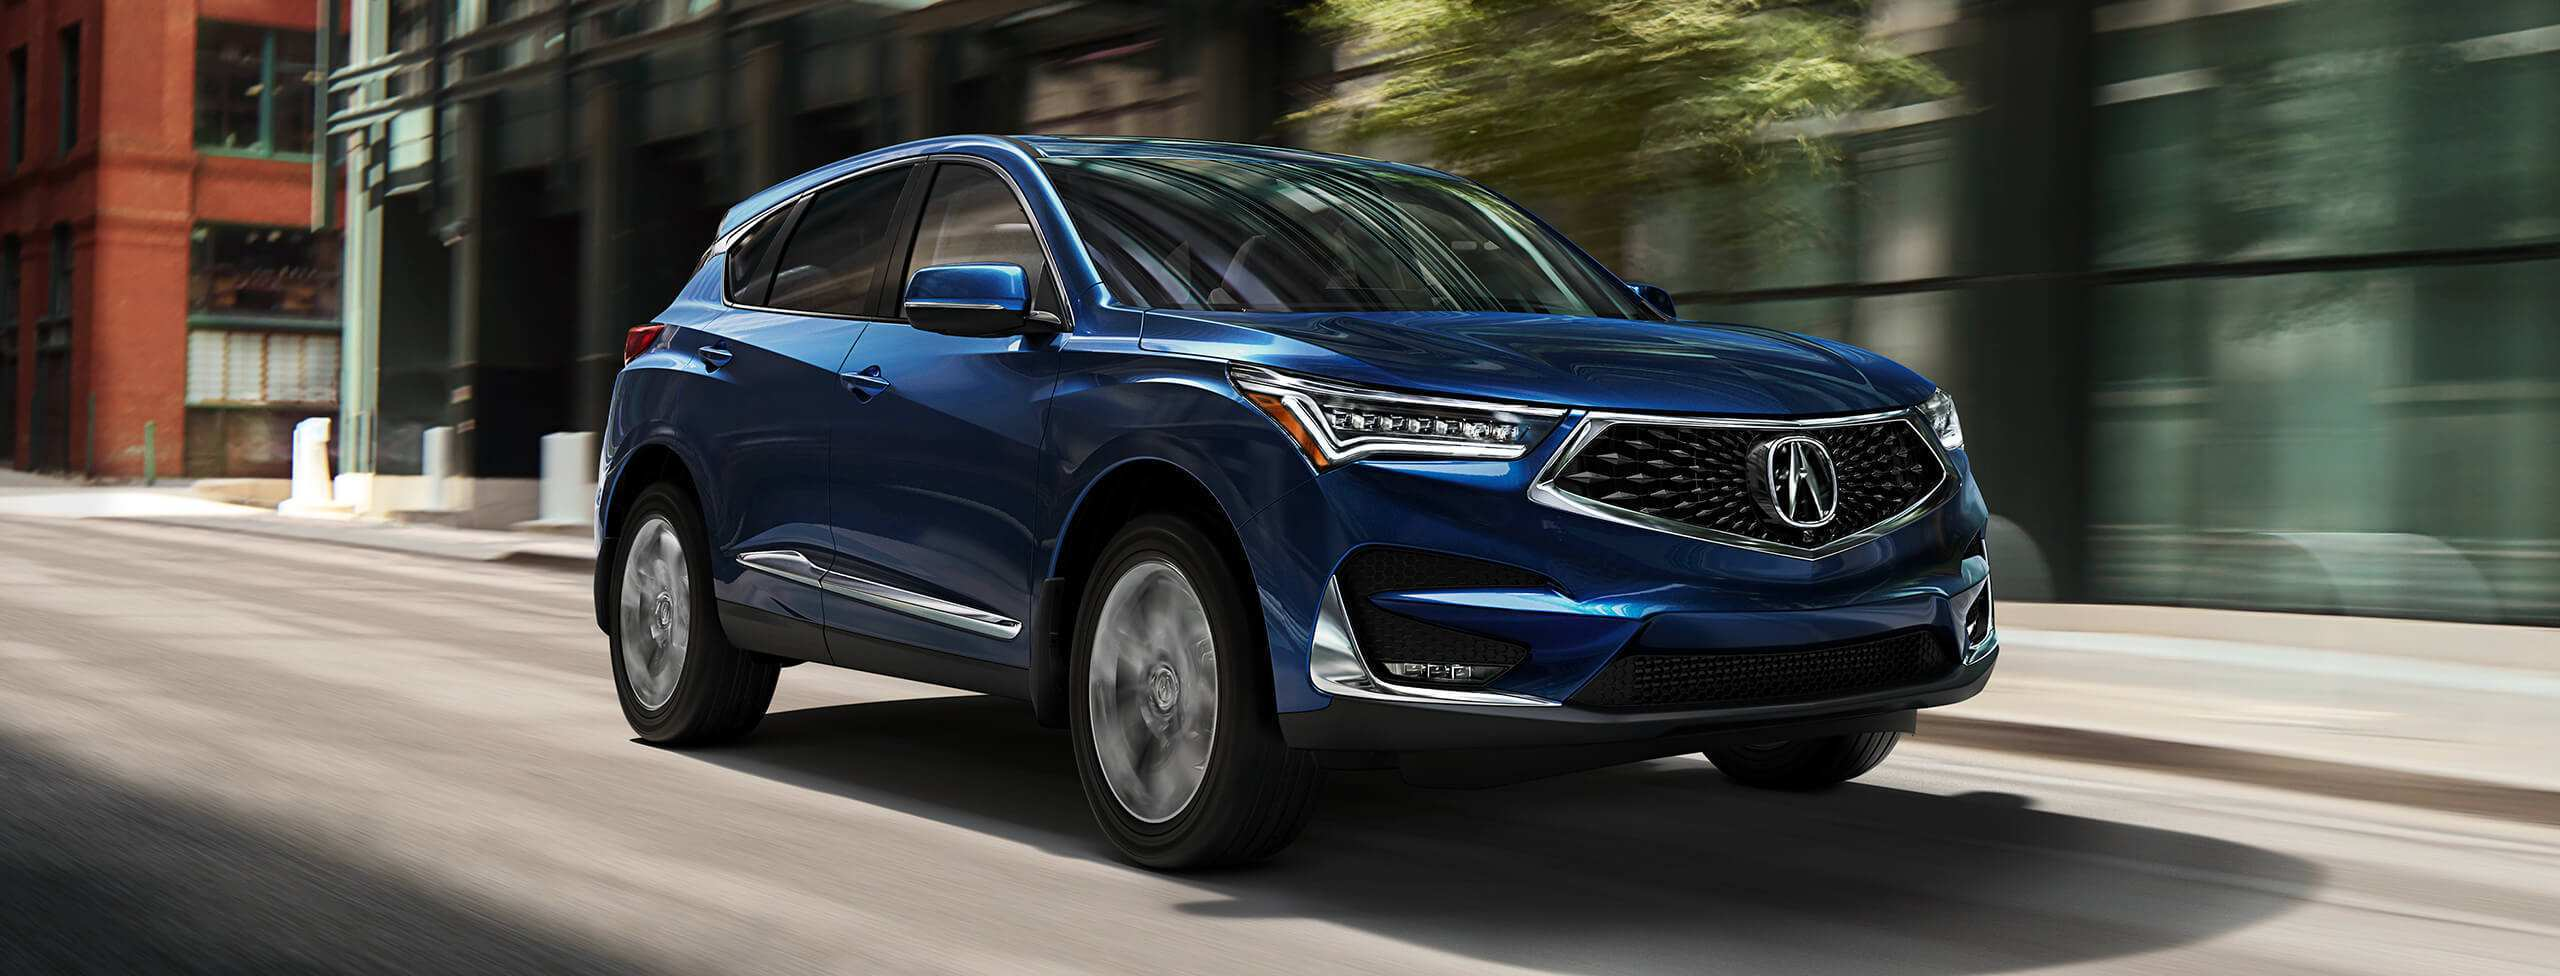 66 Gallery of The Acura Rdx 2019 Brochure Specs Performance and New Engine by The Acura Rdx 2019 Brochure Specs